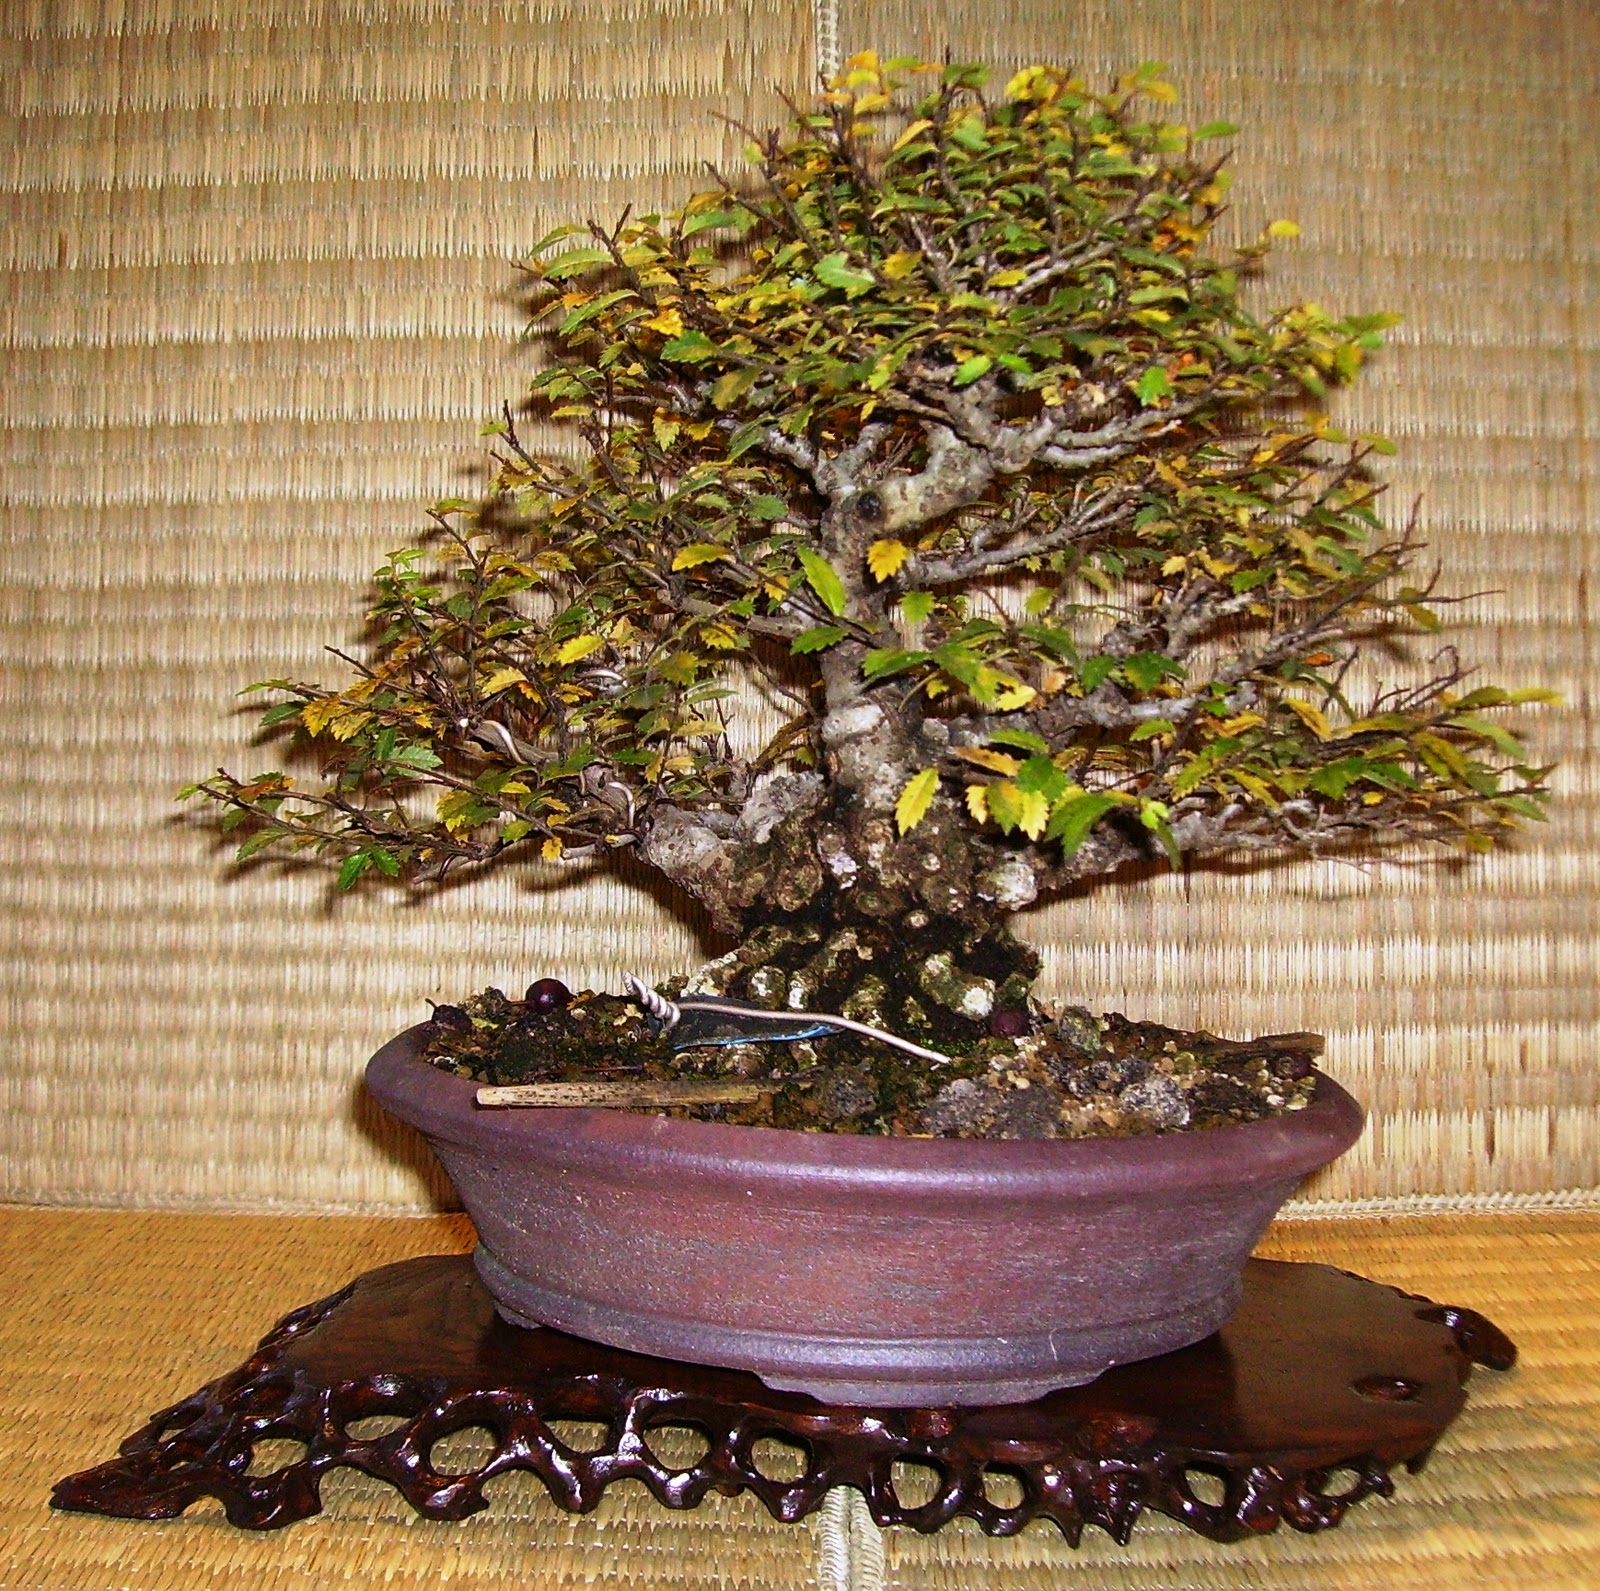 Bespoke Bonsai Stands November 2011